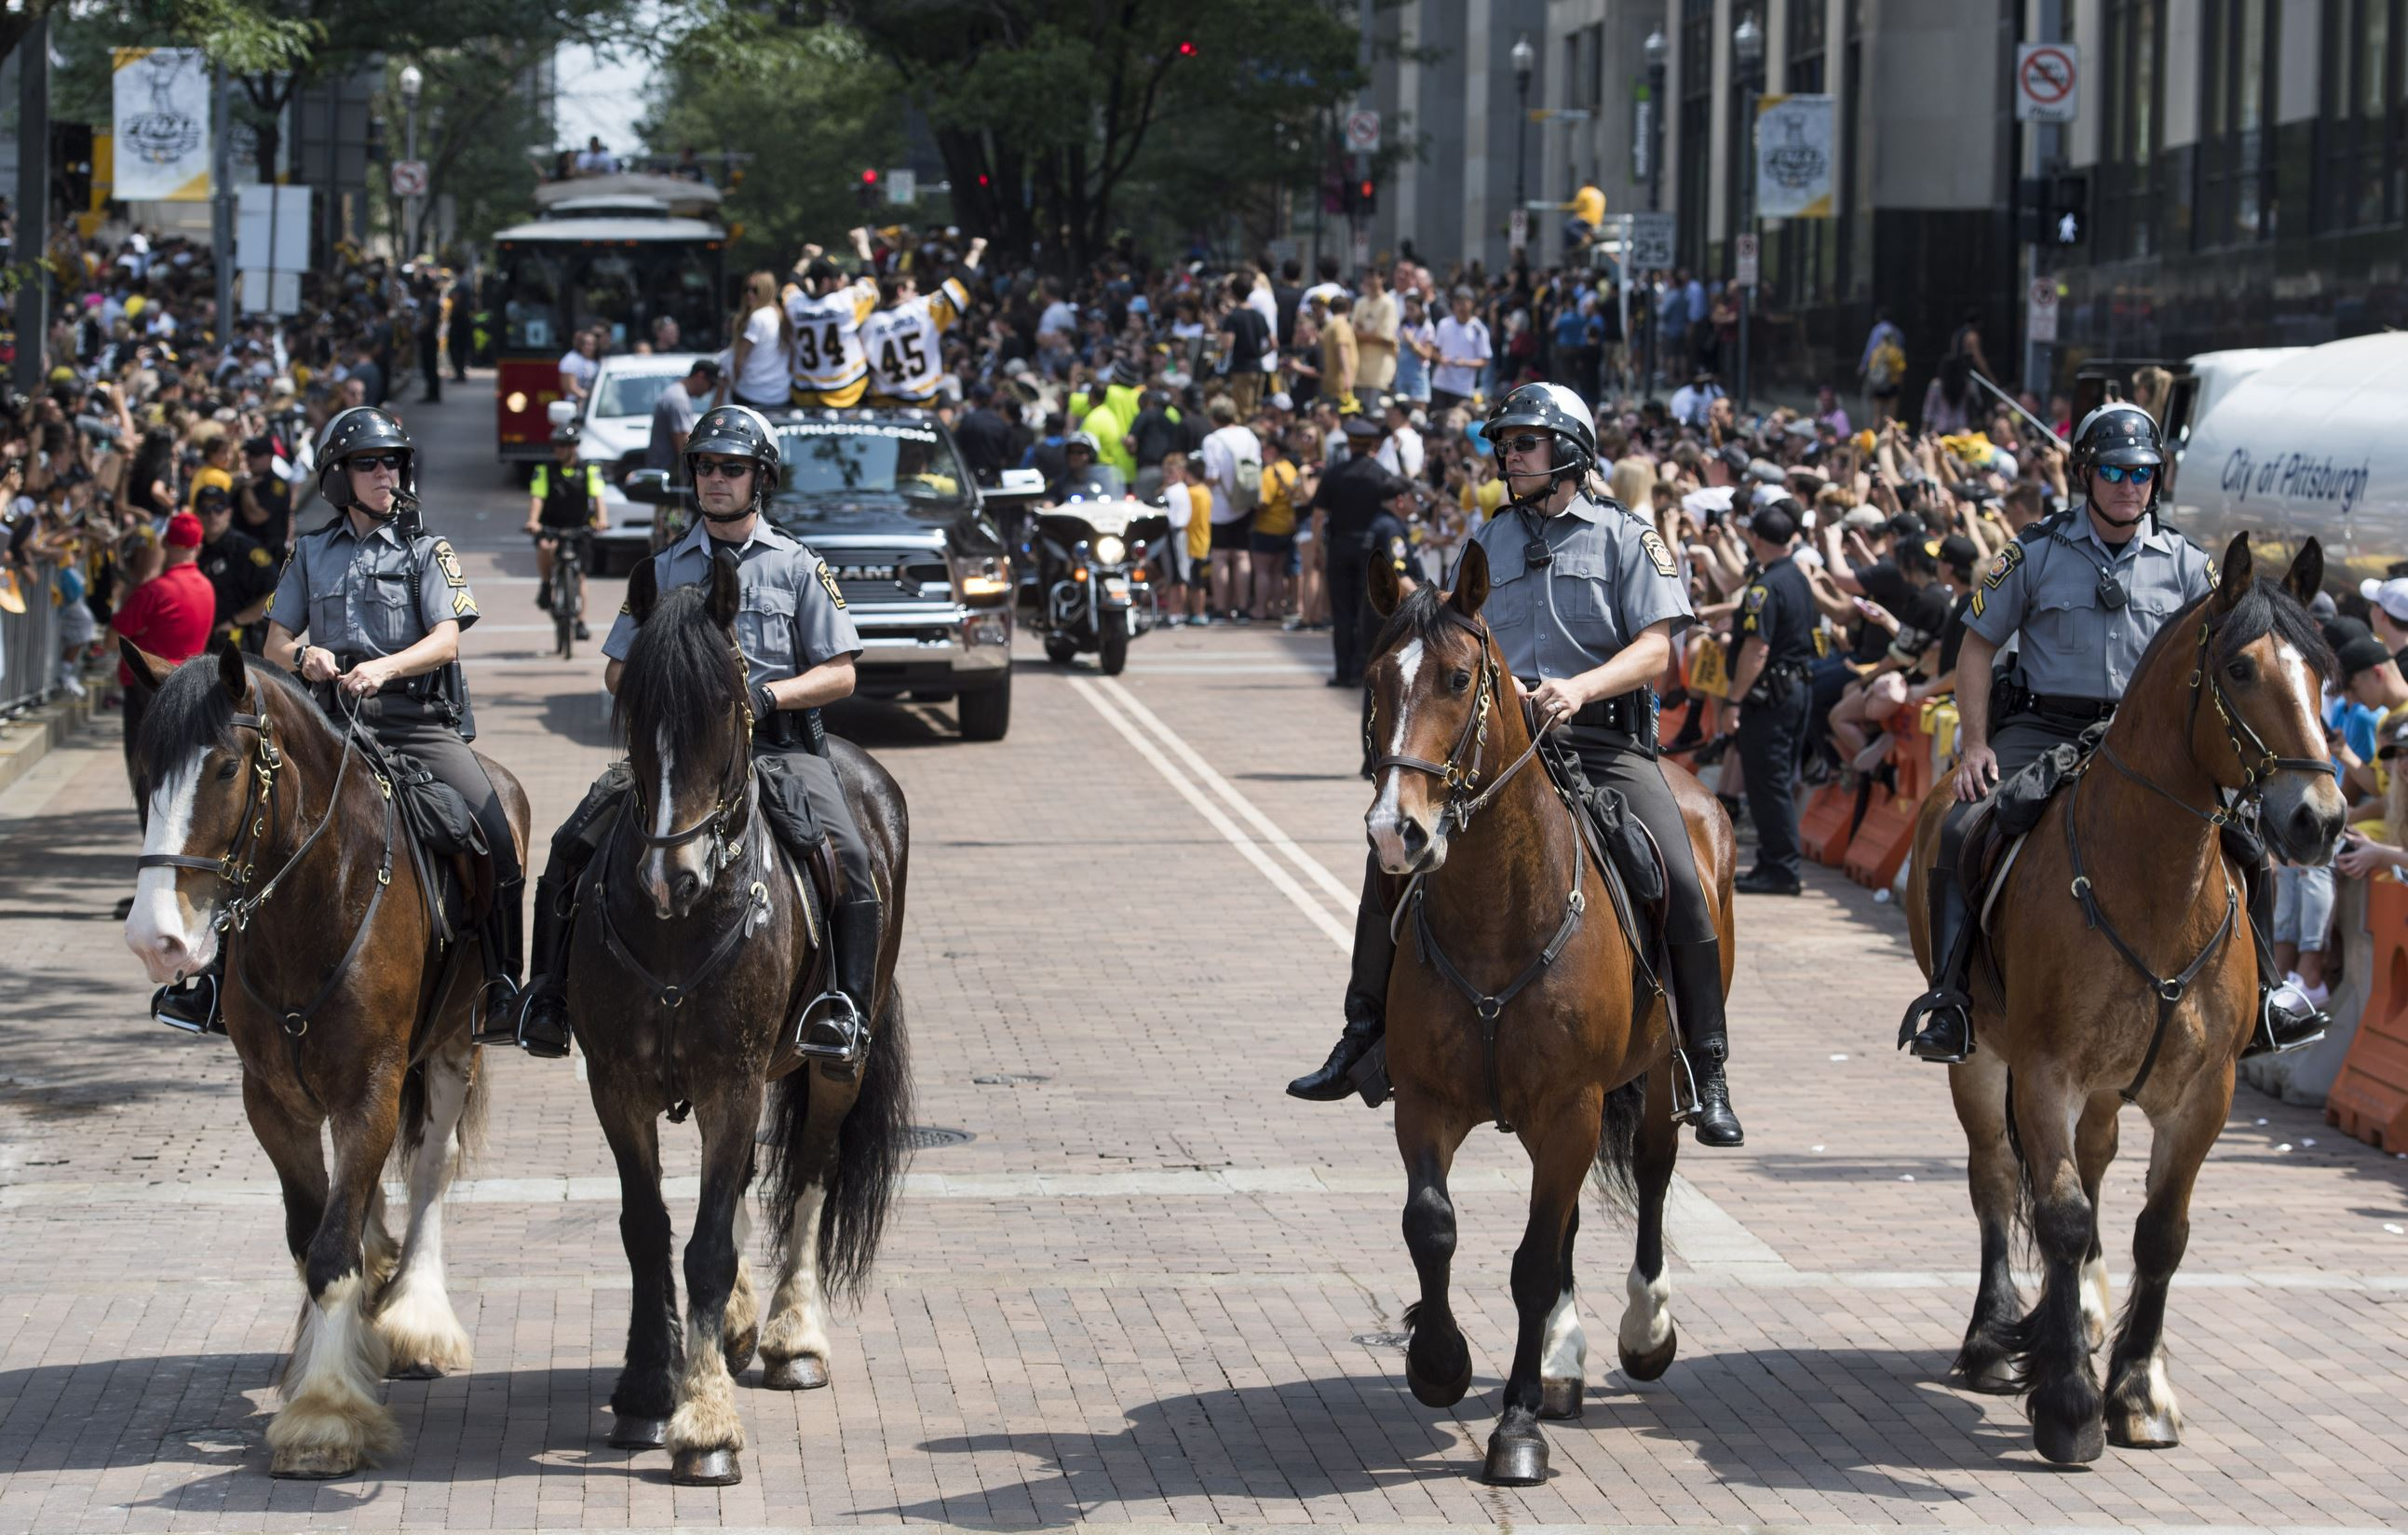 20170614scPoliceHorse02-1 Police horses ride in the Penguins victory parade on Wednesday at Grant Street and Boulevard of the Allies.